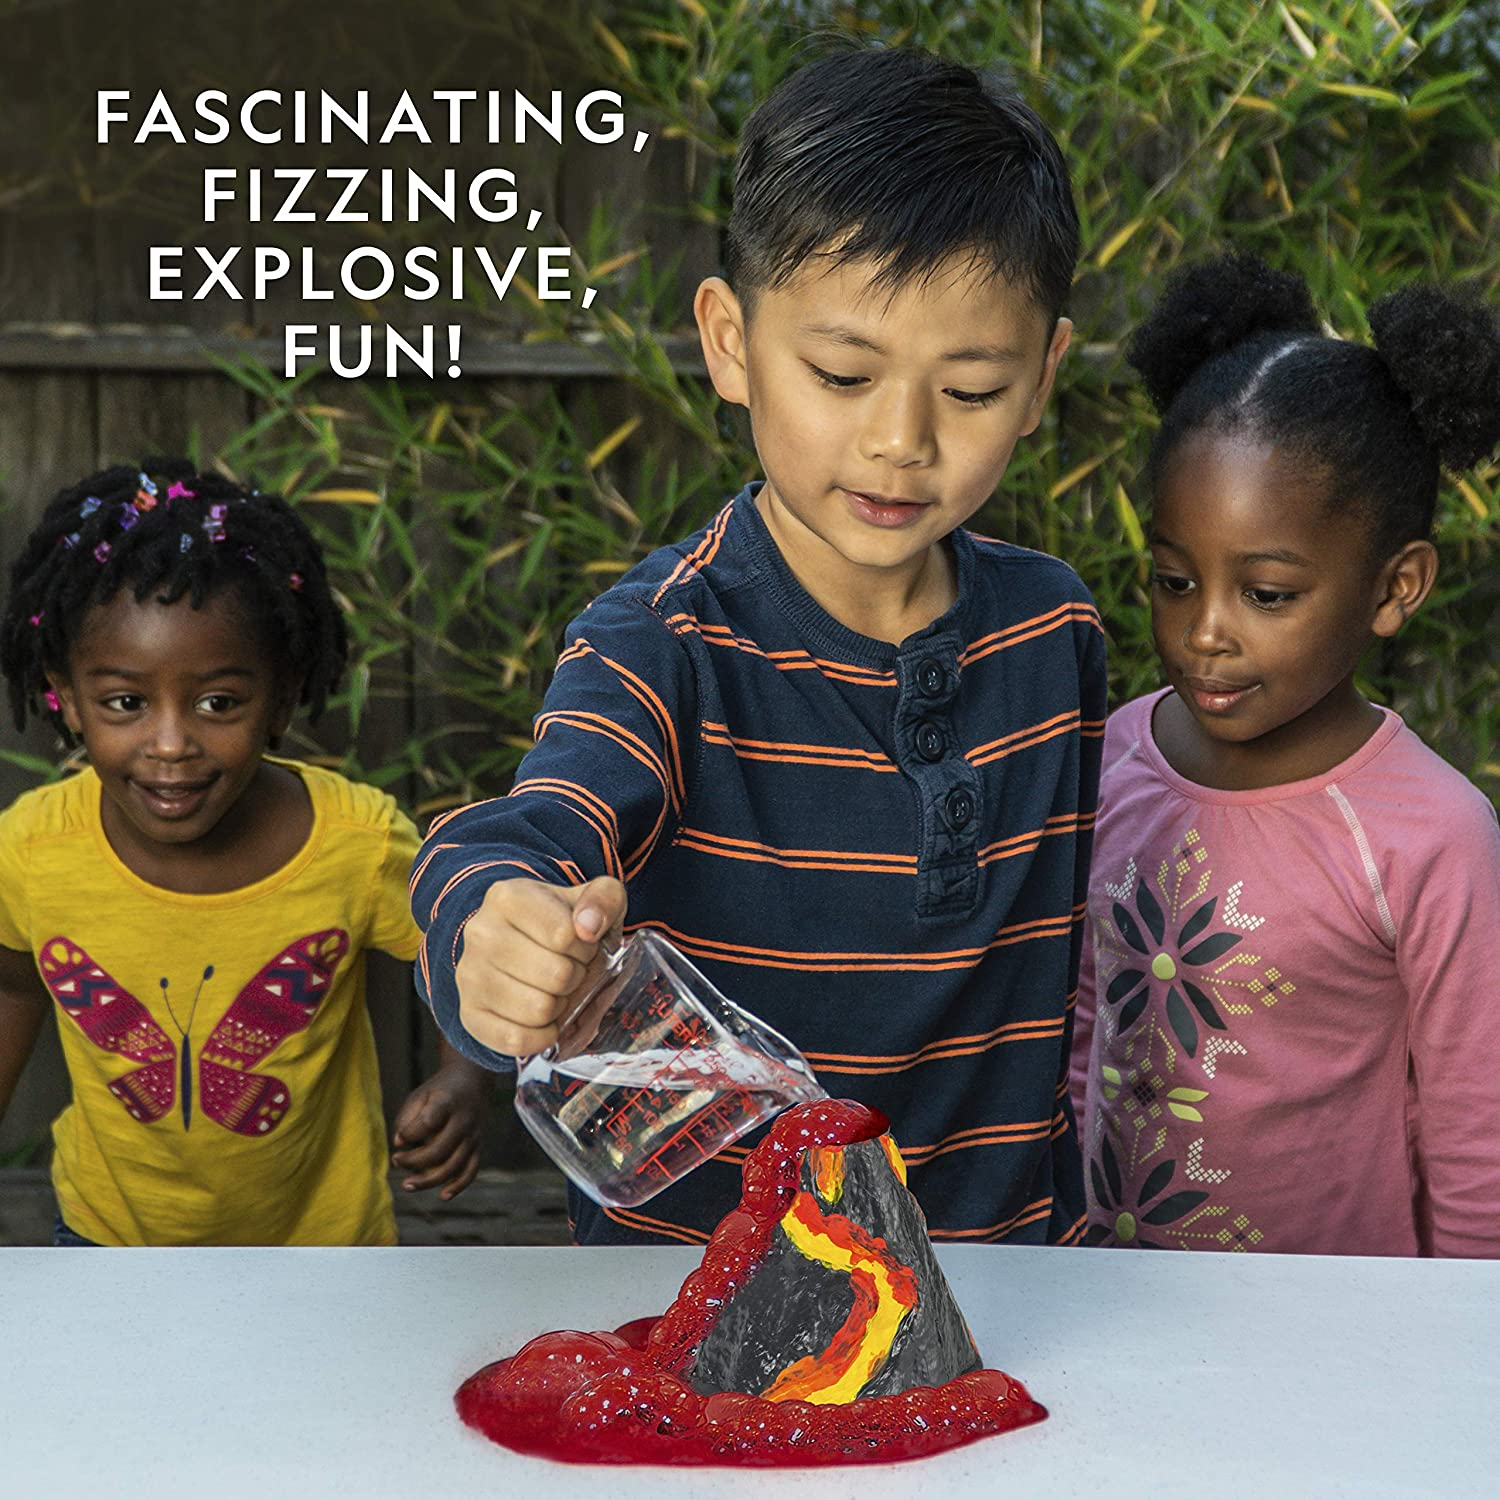 National Geographic Volcano Science Kit Multiple Eruption Experiments to Try Build an Erupting Volcano with This Volcano Kit for Kids Great for Science Projects